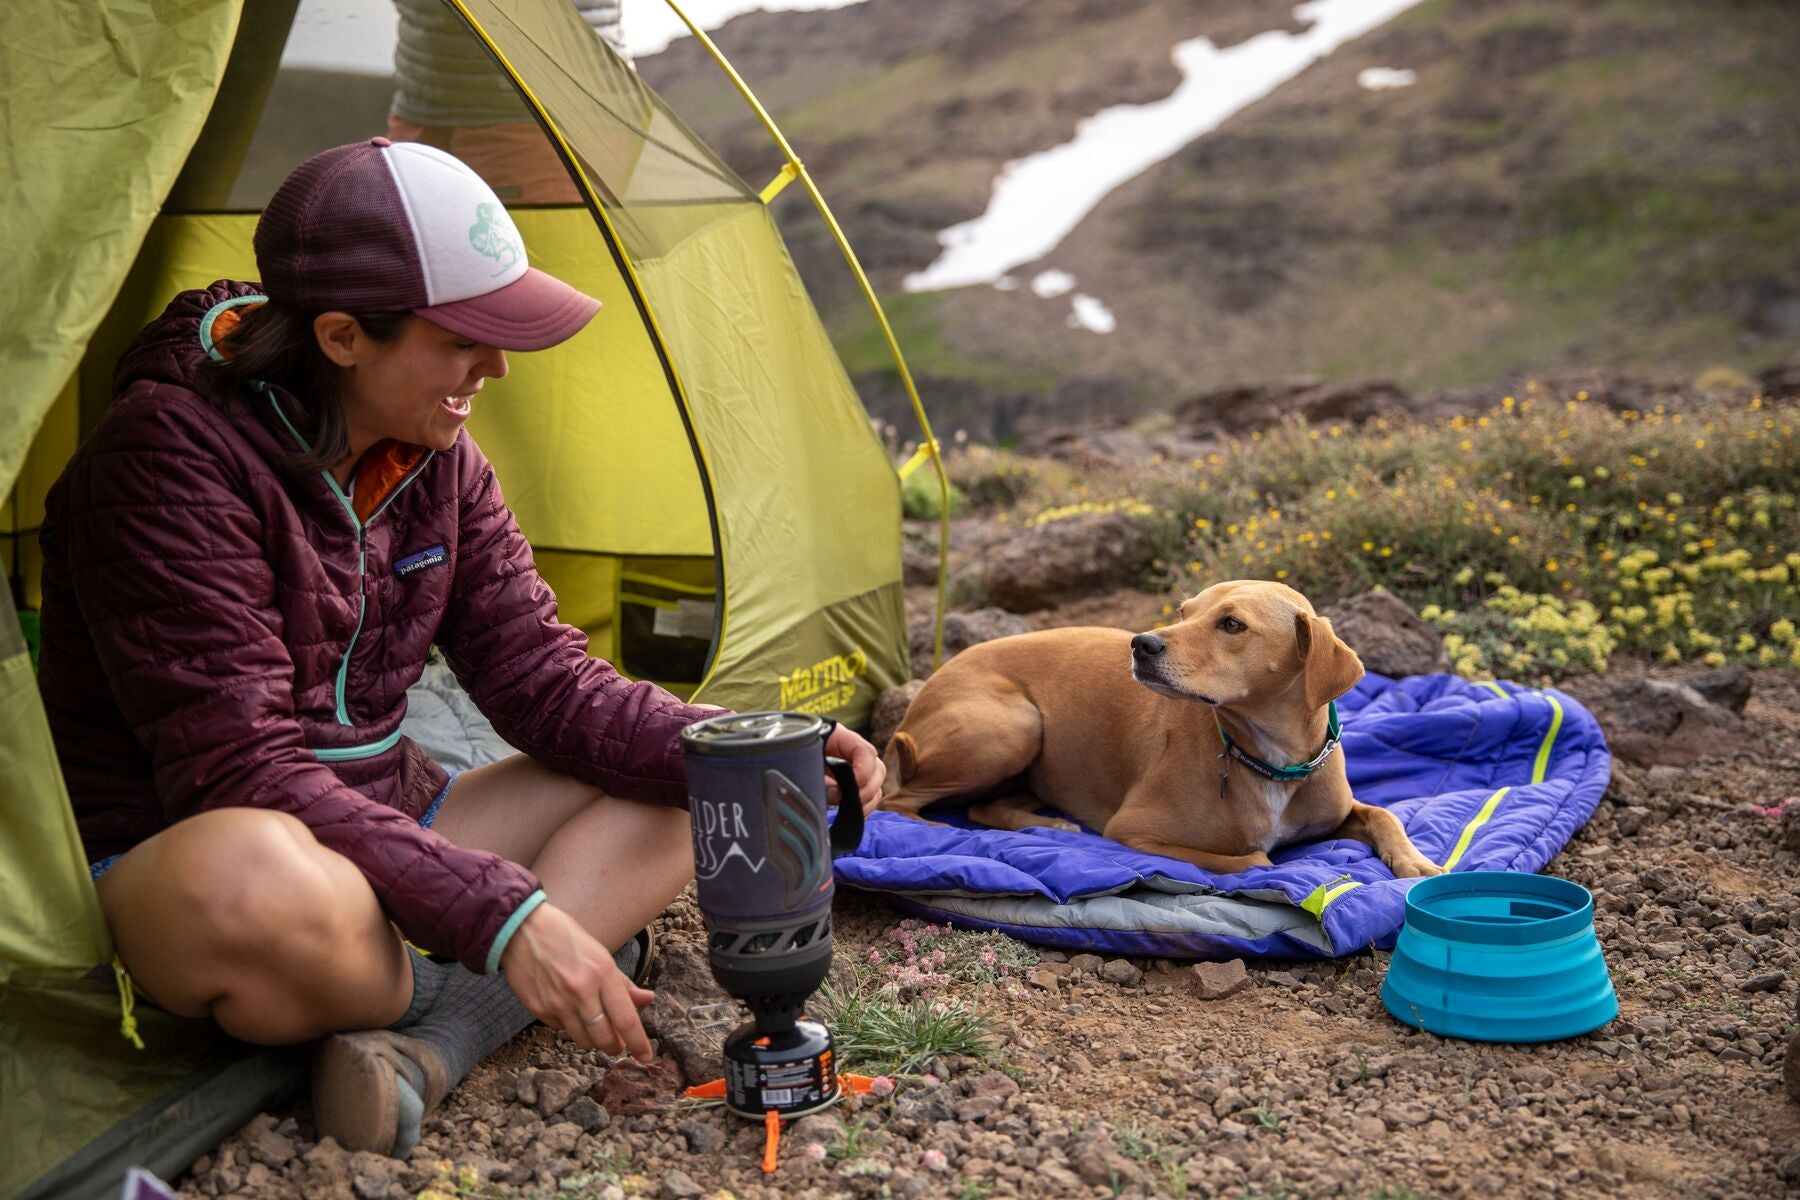 Human sitting in edge of tent cooking on her camp stove while dog sits next to her in Highlands dog sleeping bag.